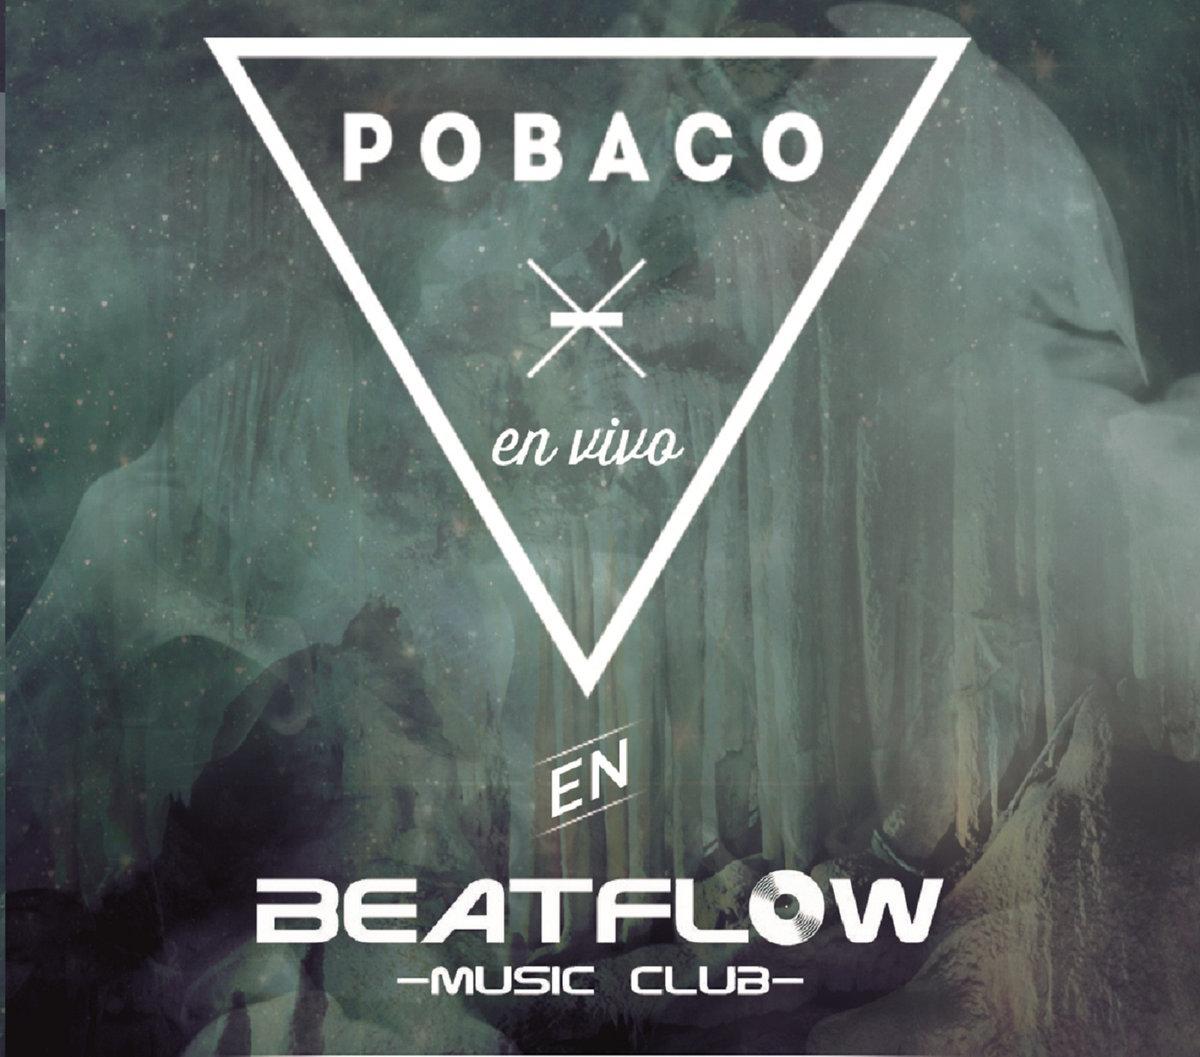 En vivo en Beatflow